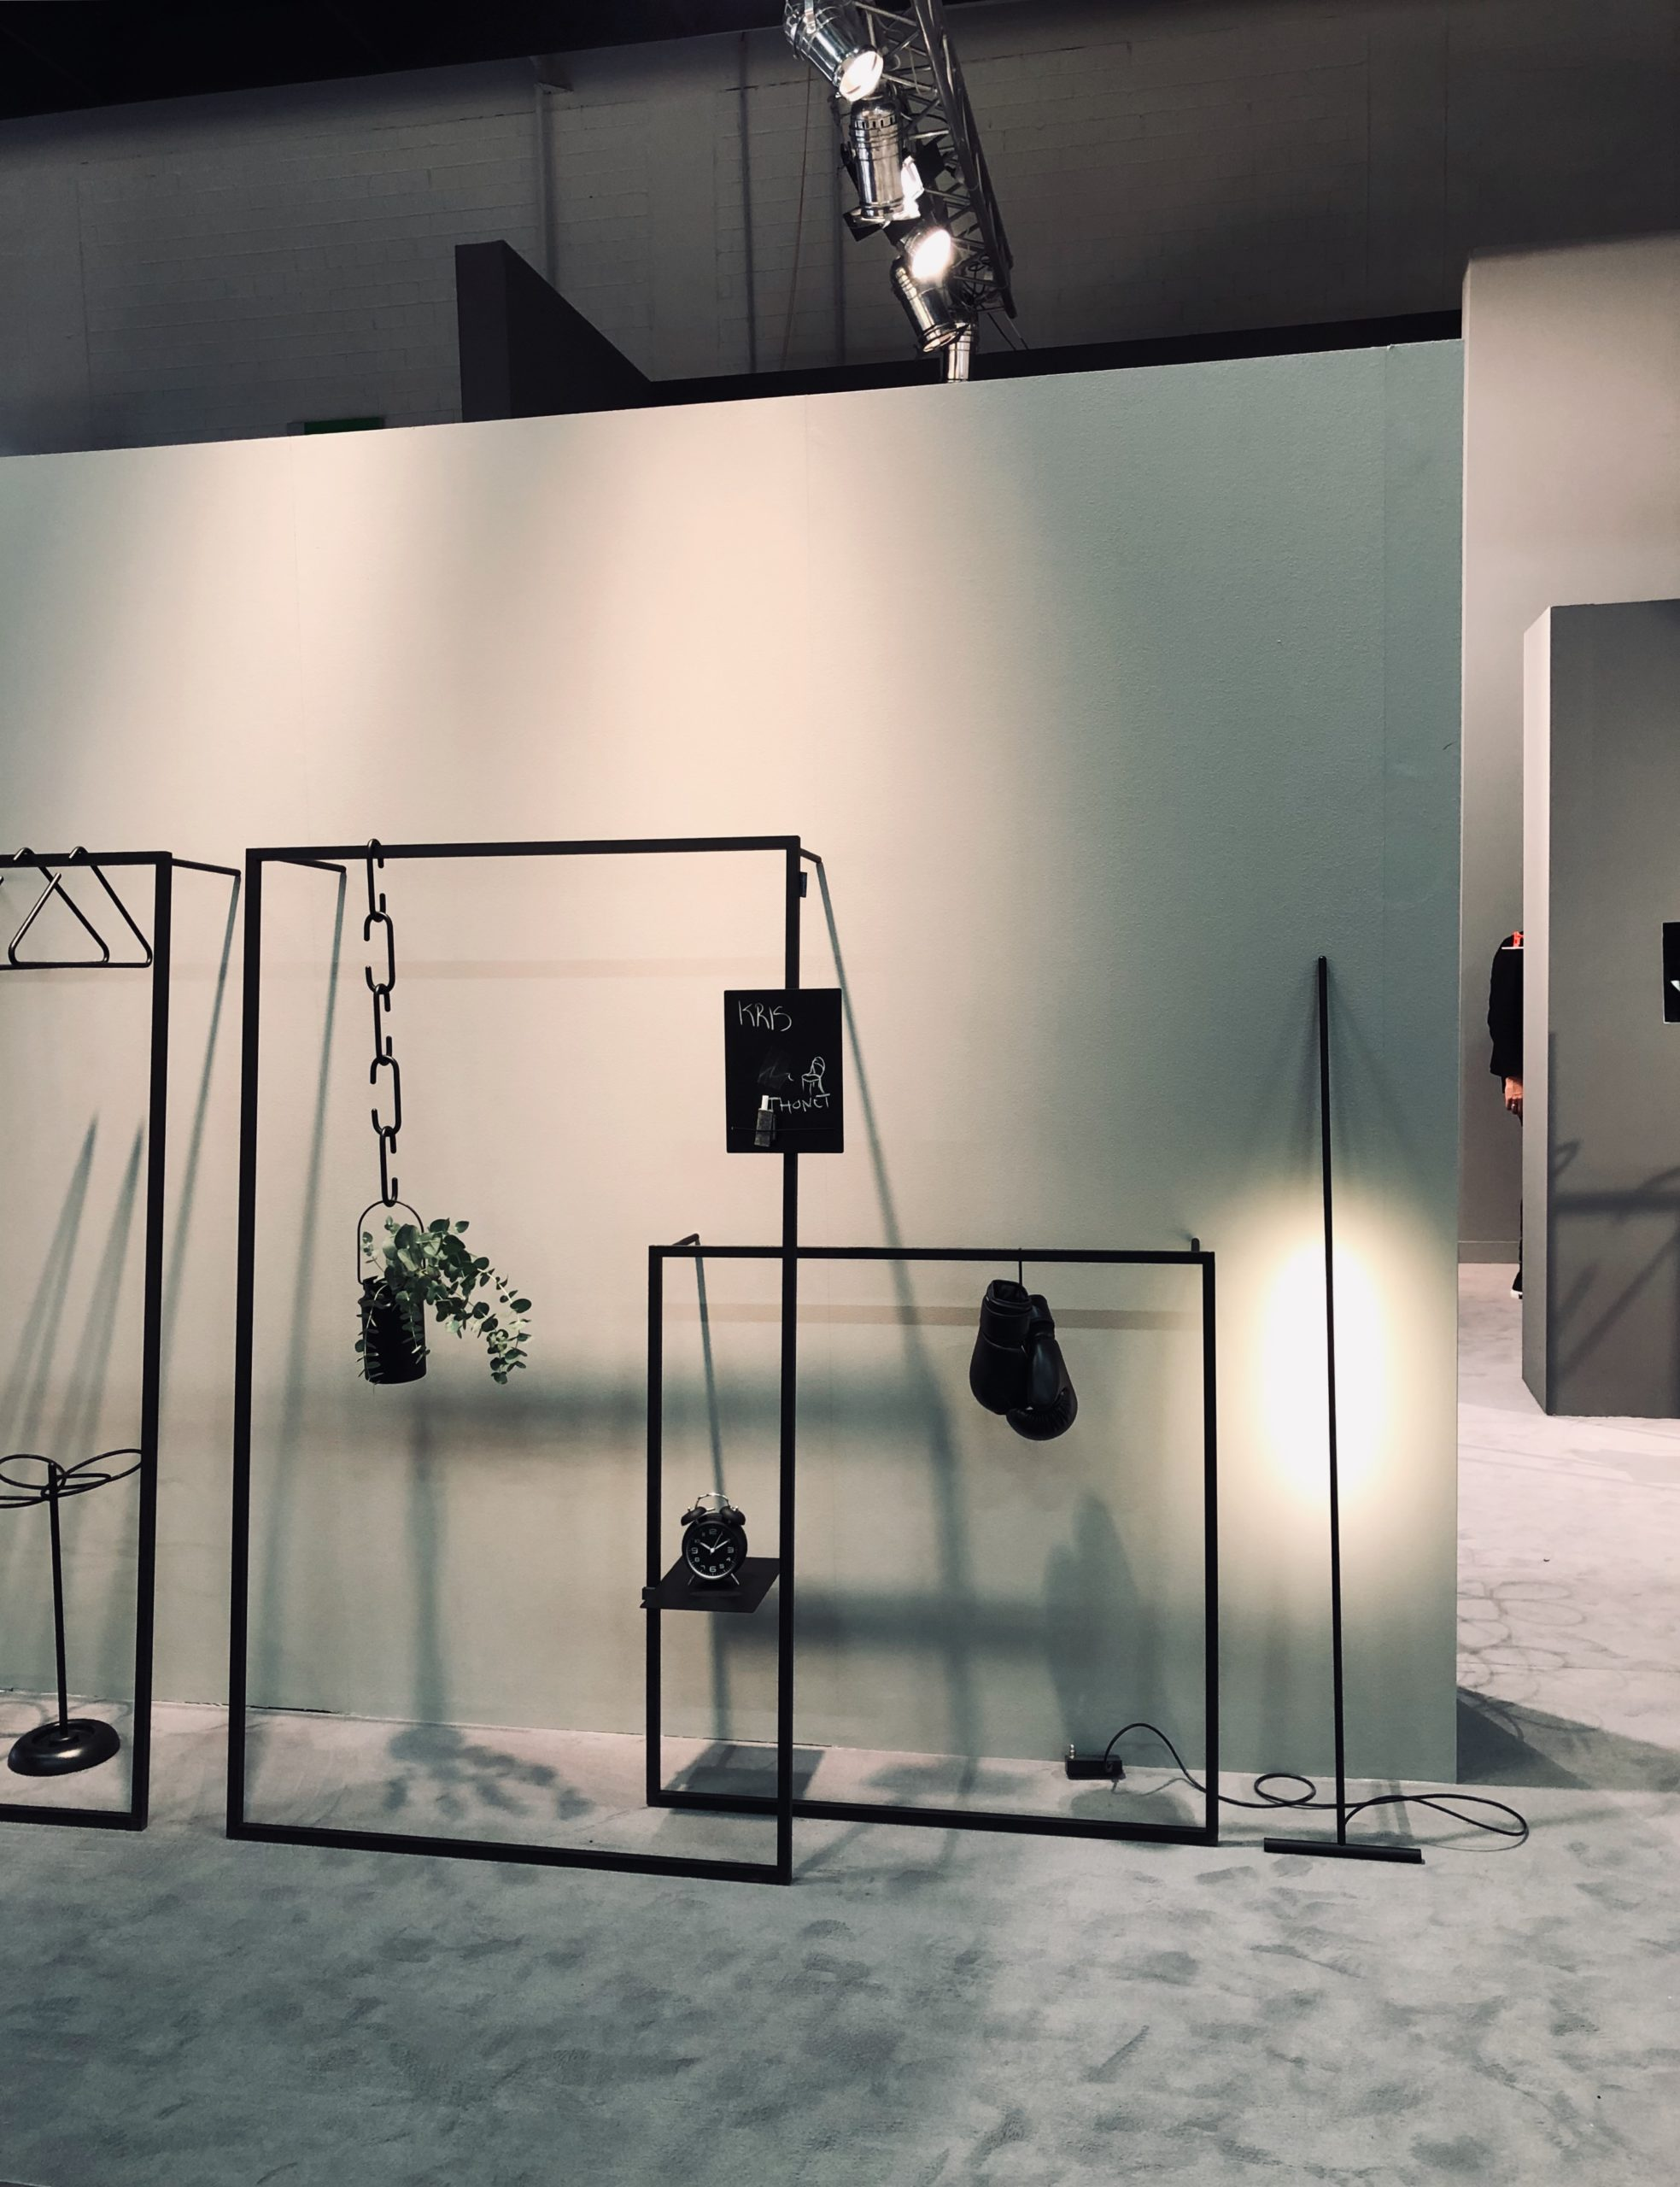 imm cologne 2019 / Messestand